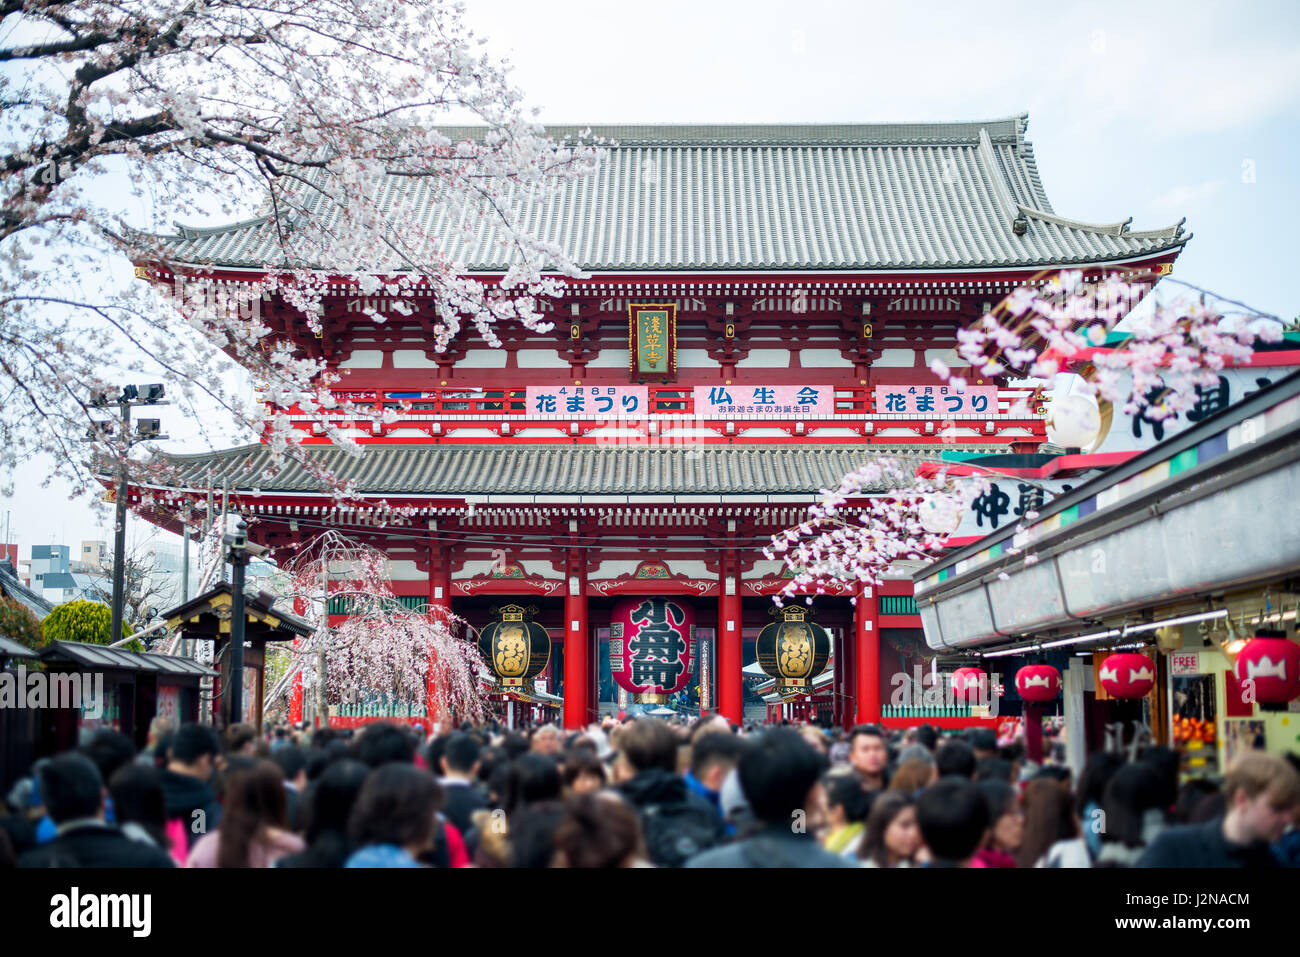 Undefined Tourist in Sensoji shrine. Sensoji temple at Asakusa district in Tokyo, Japan. - Stock Image